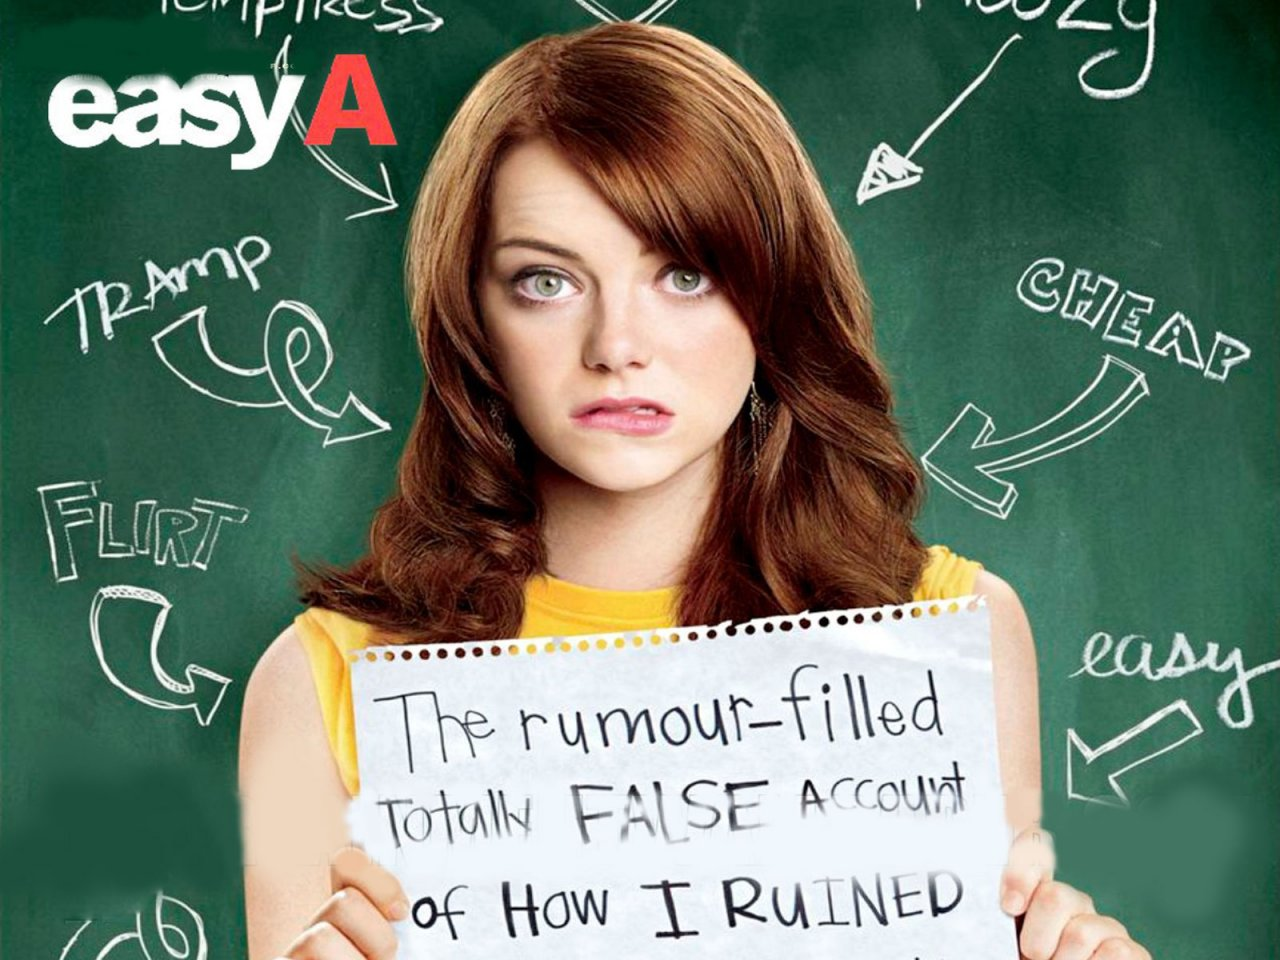 """""""Easy A"""" and the failure of evangelism"""